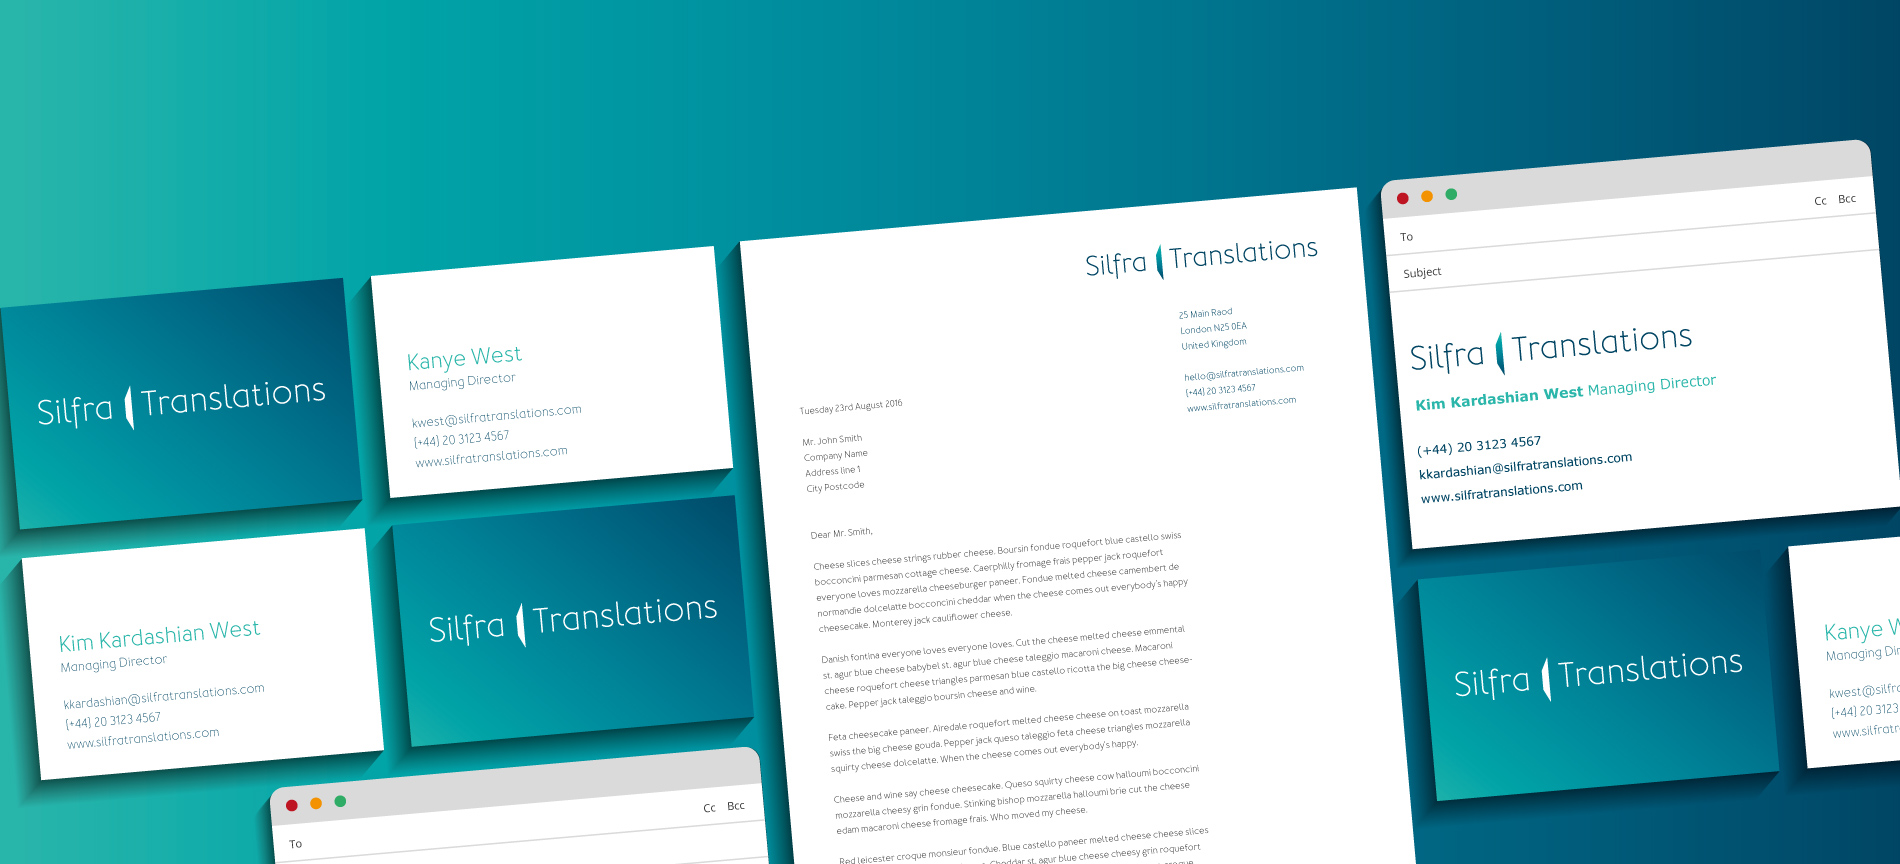 Silfra Translations letterhead, business card and email signature - desktop